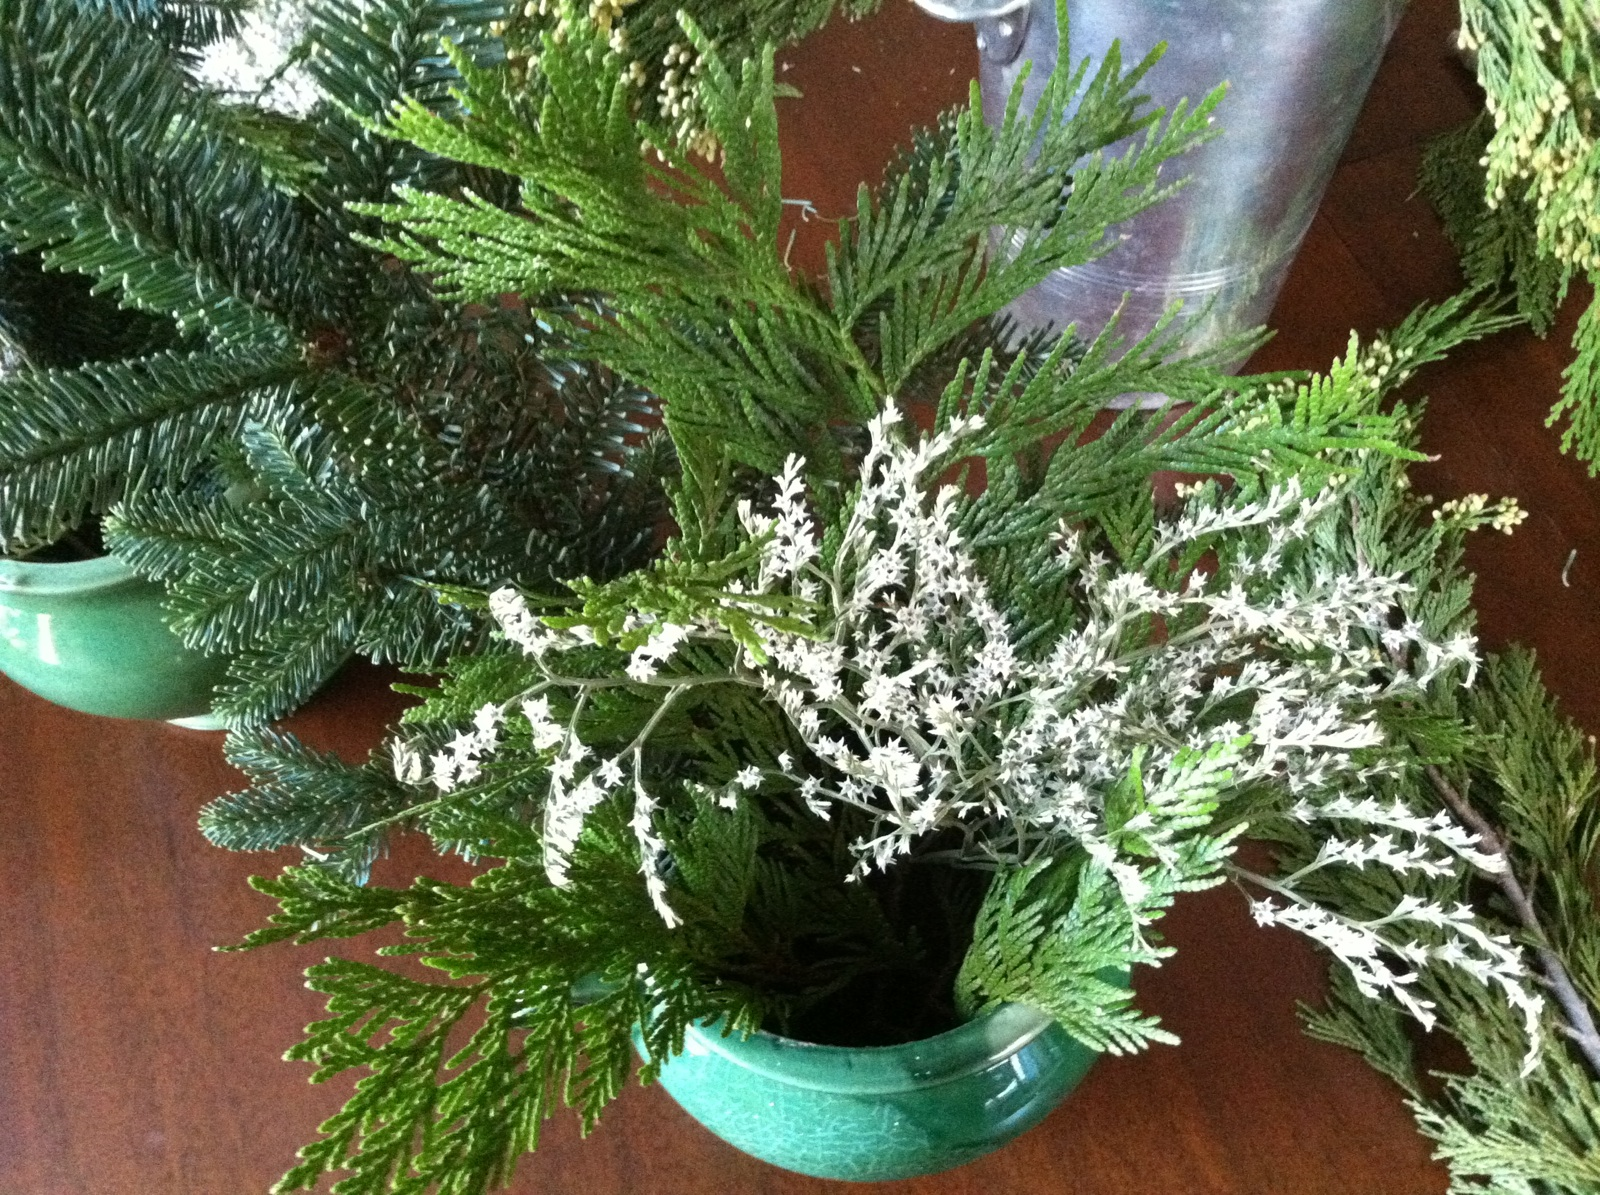 3-the-arrangements-are-coming-along-the-dried-white-statice-in-our-box-of-decorating-greens-resembles-a-s